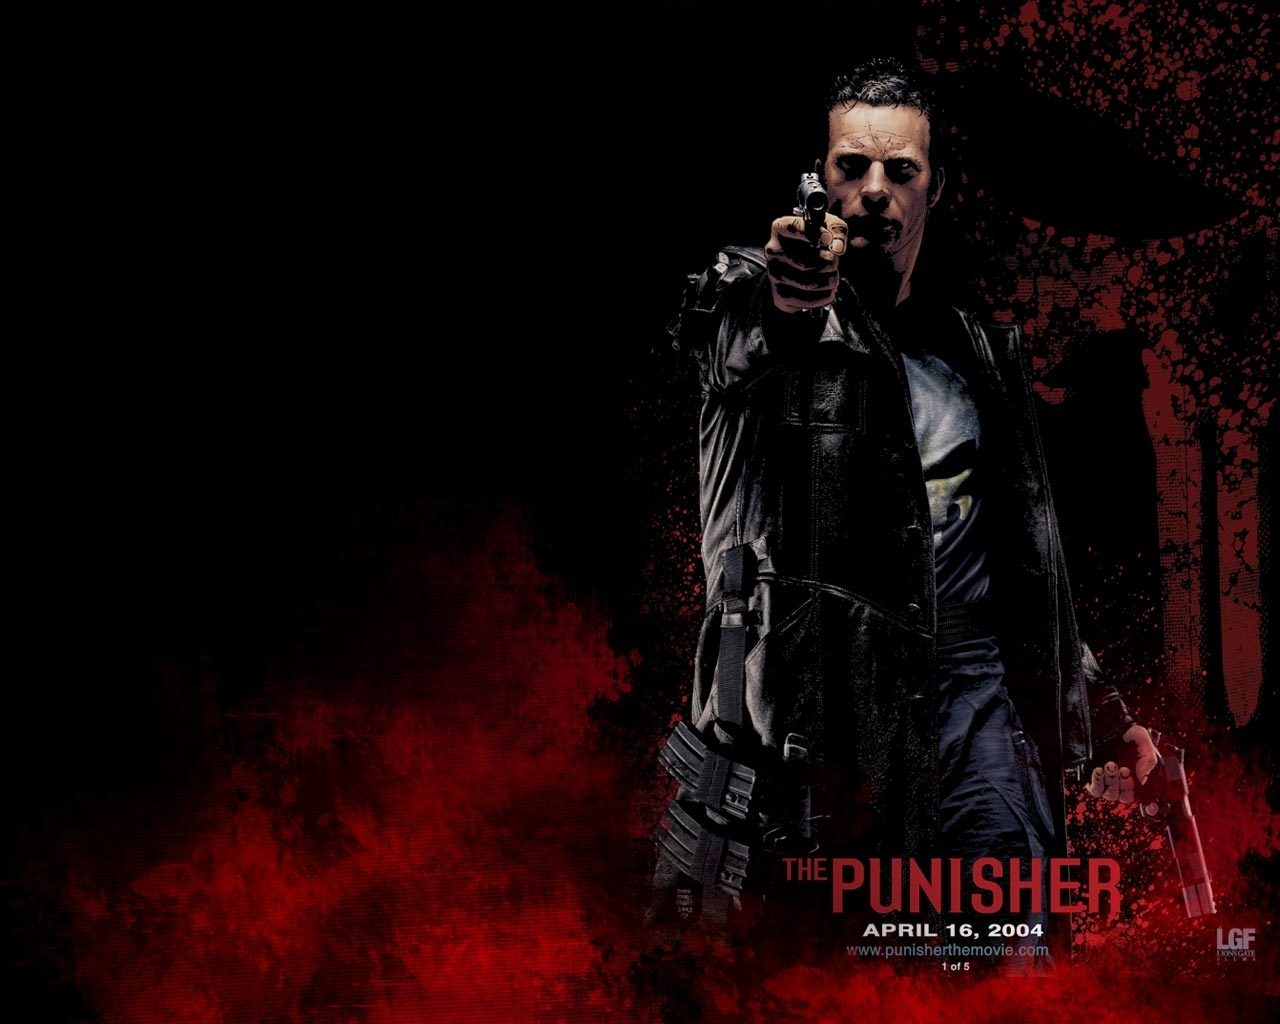 The Punisher   The Punisher Wallpaper 1641530 1280x1024